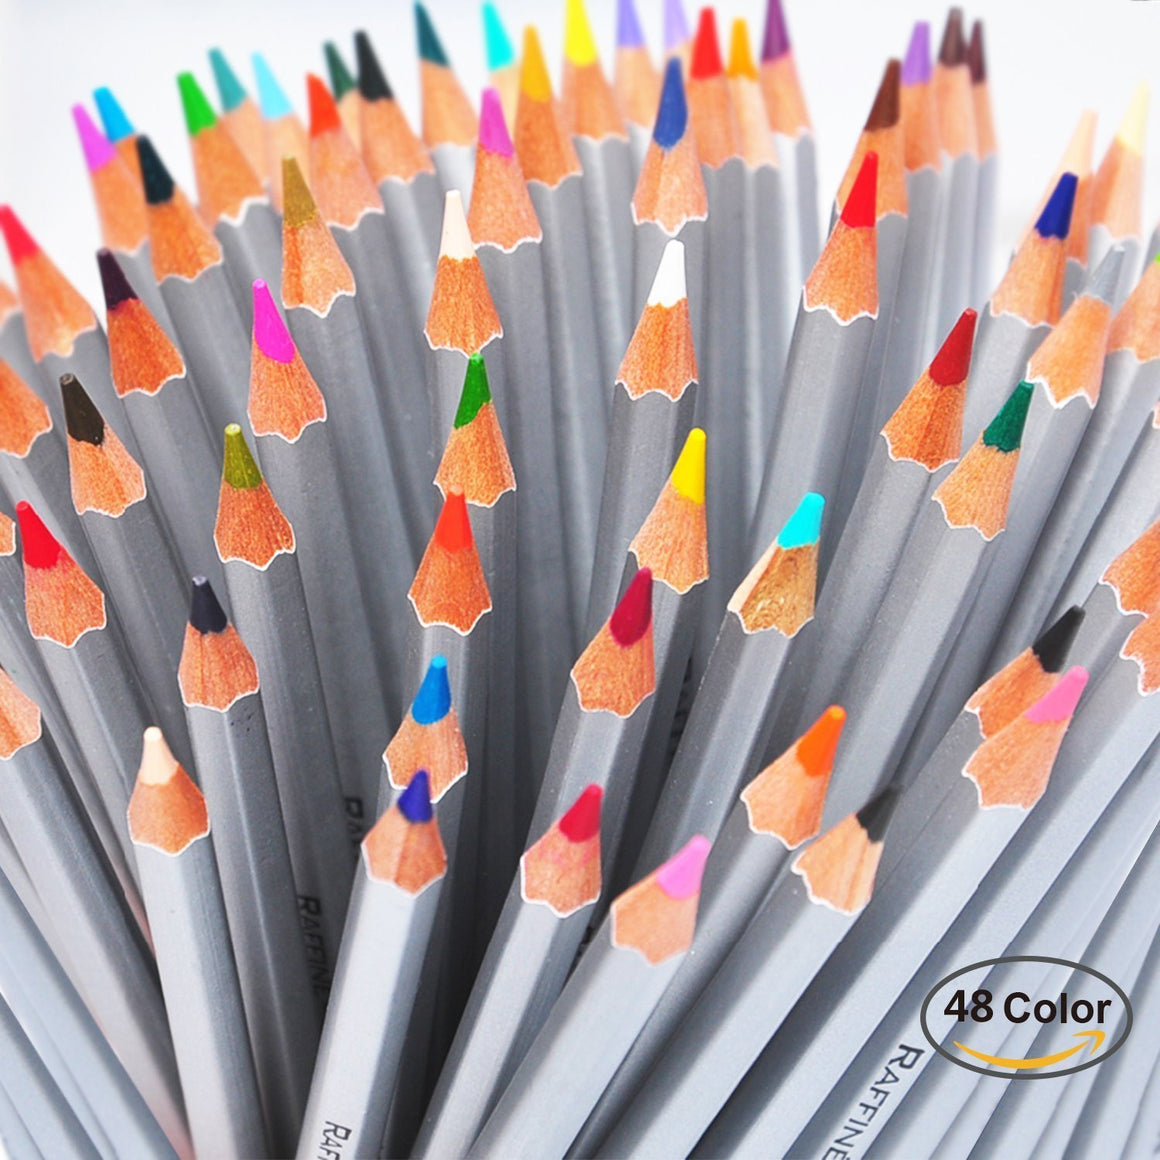 Abdtech 48 Assorted Color Art Colored Pencils